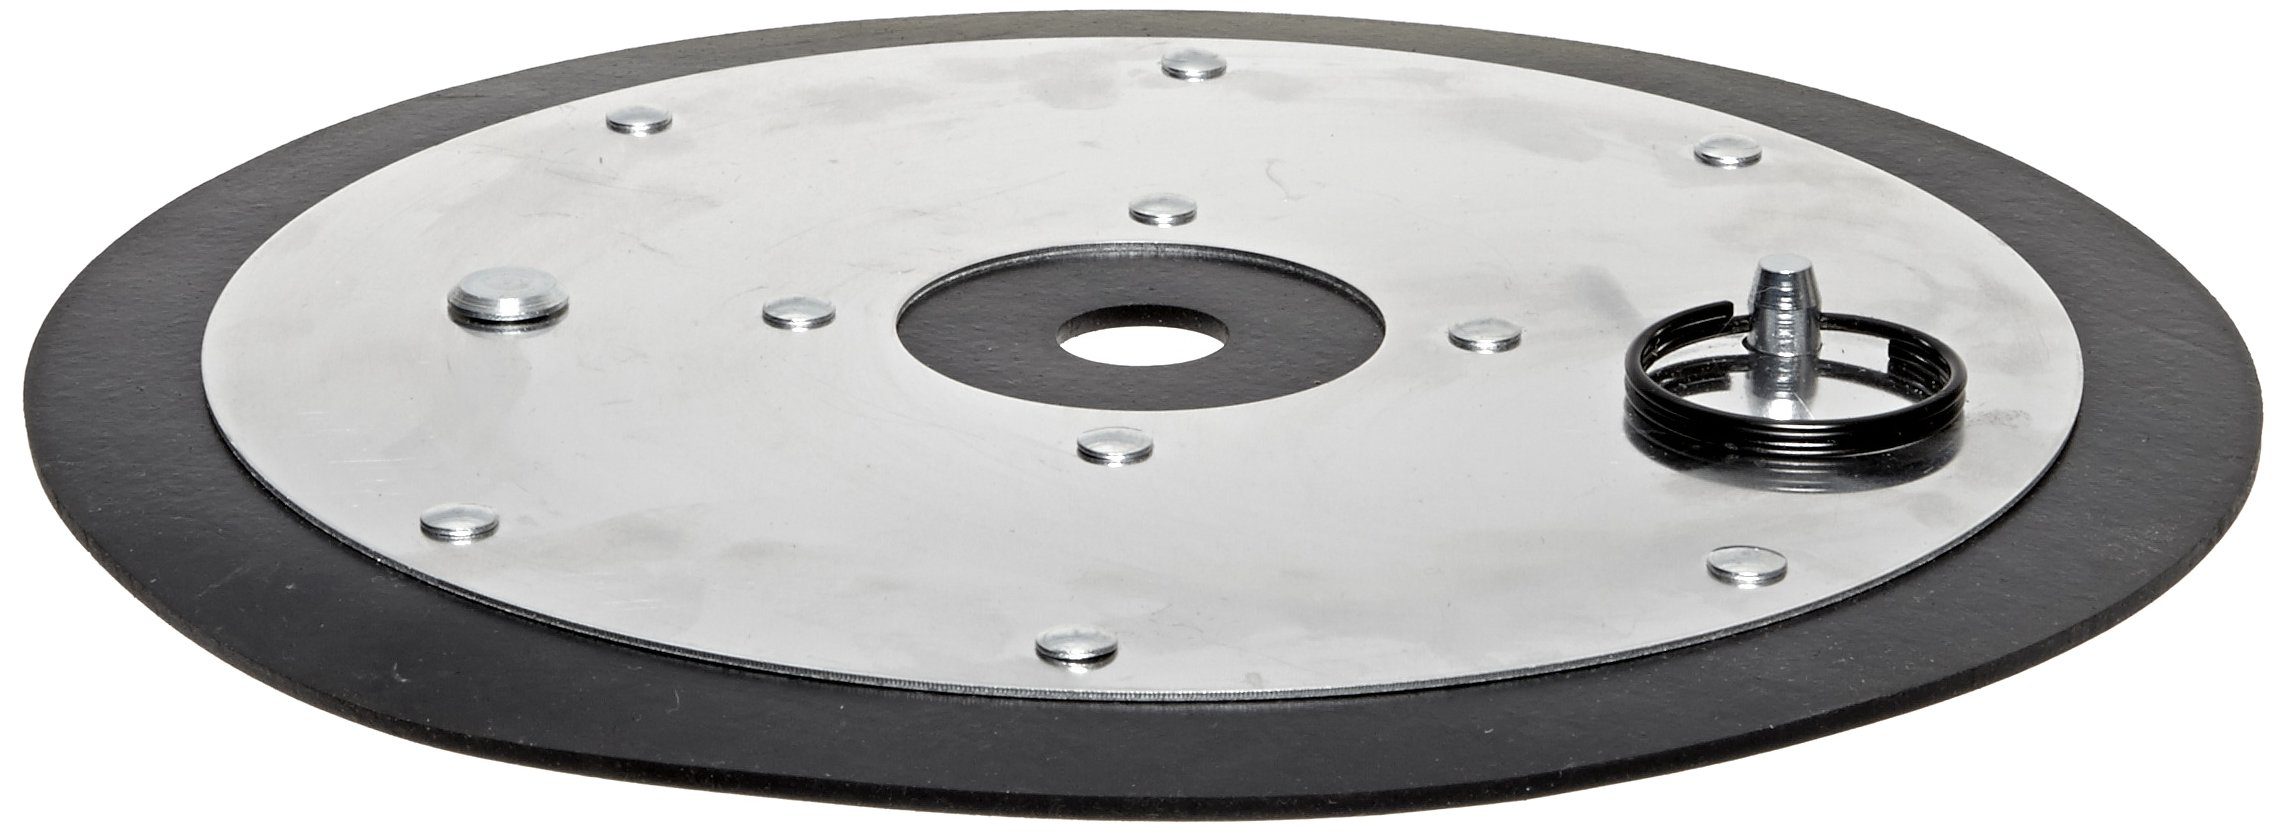 Alemite 337665 Follower Plate, Use with 35 lb Pail, Grease, and 9911 Series (RAM) Pumps, 1-1/8'' Tube OD